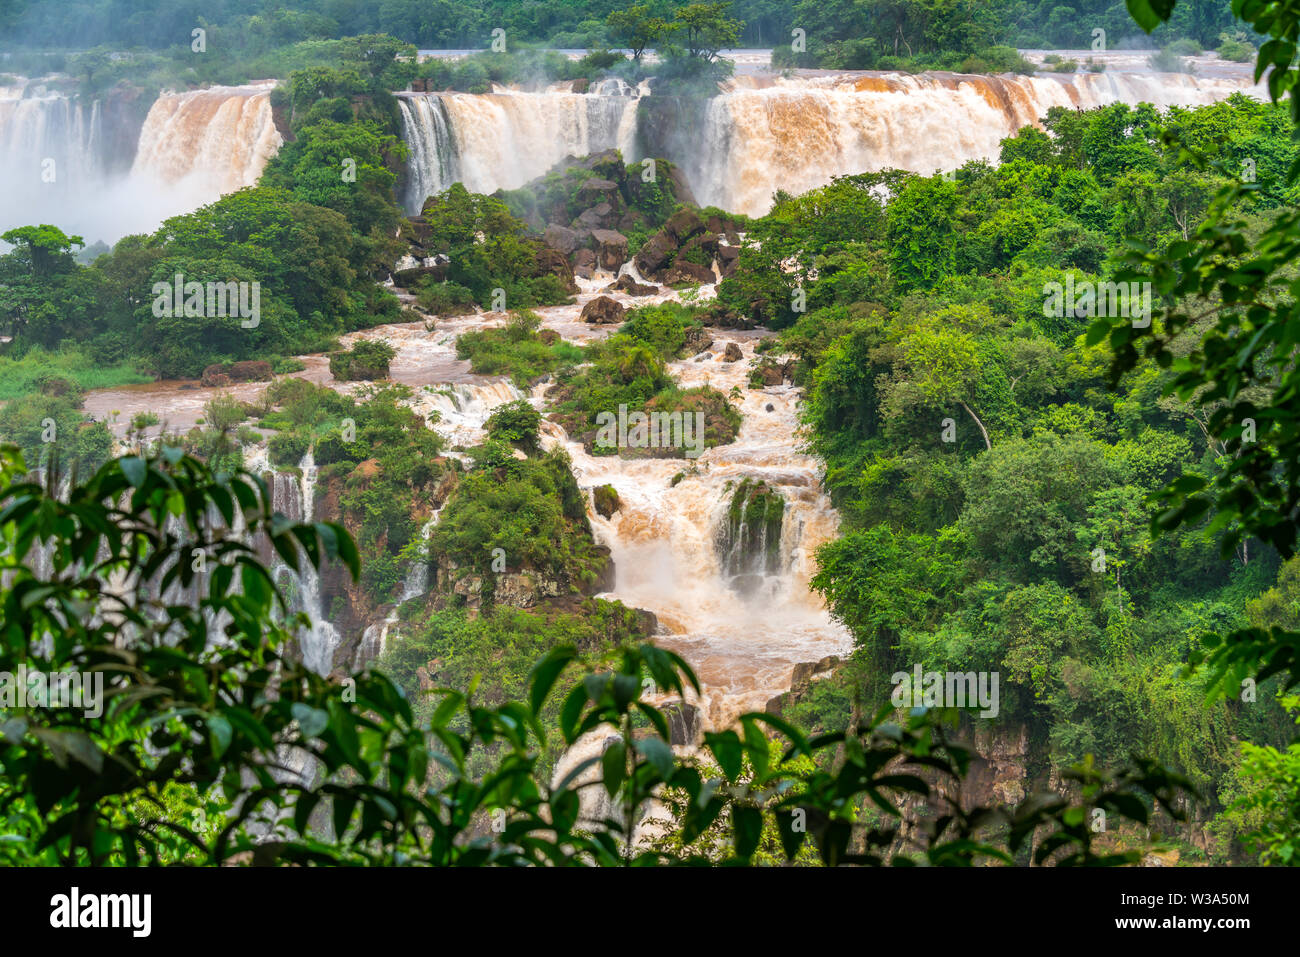 View of the famous Iguazu Falls from Brazilian side. Iguazu falls are waterfalls of the Iguazu River at the border of Argentina and Brazil - Stock Image